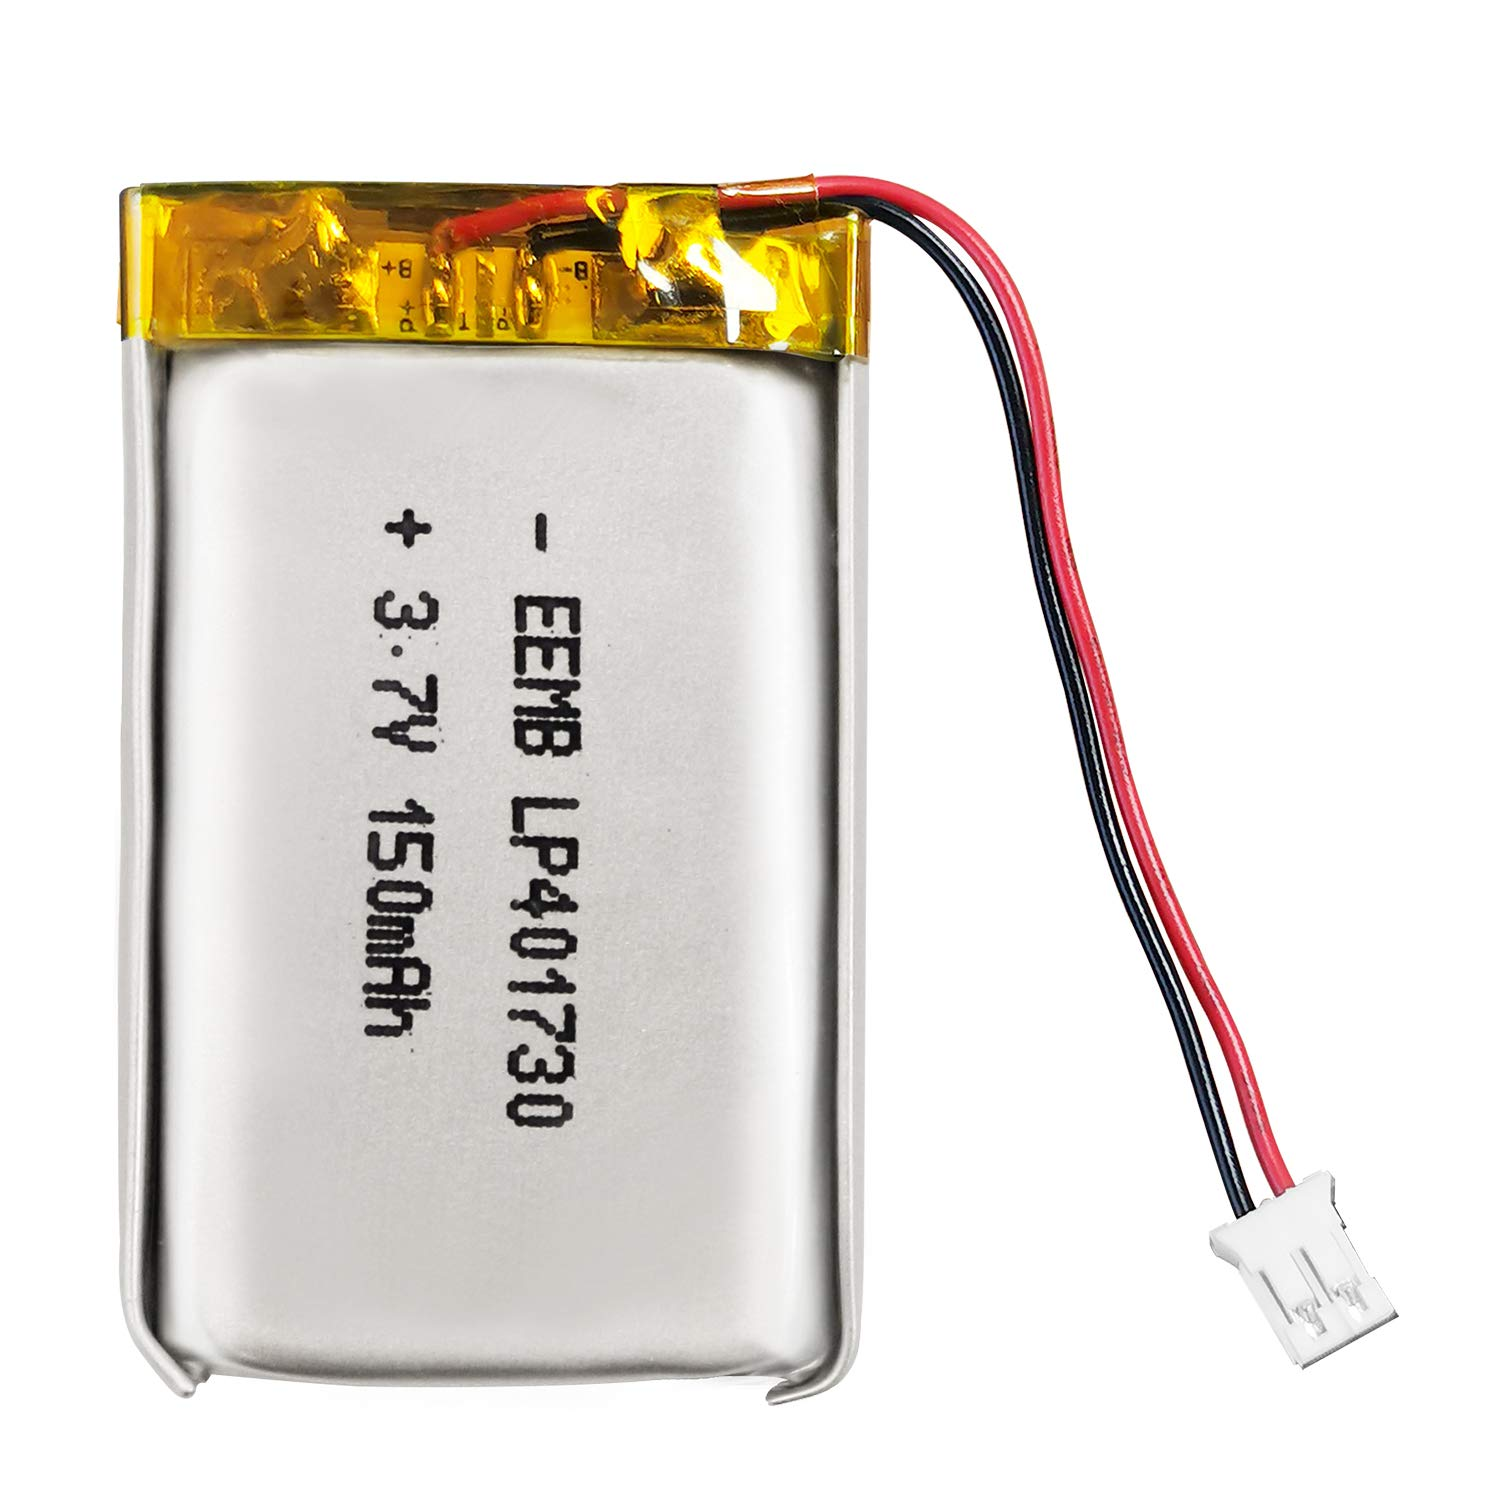 EEEMB 3.7V Lipo Battery 150mAh 401730 Lithium Polymer ion Battery Rechargeable Lithium ion Polymer Battery PCS with Molex Connector UN38.3